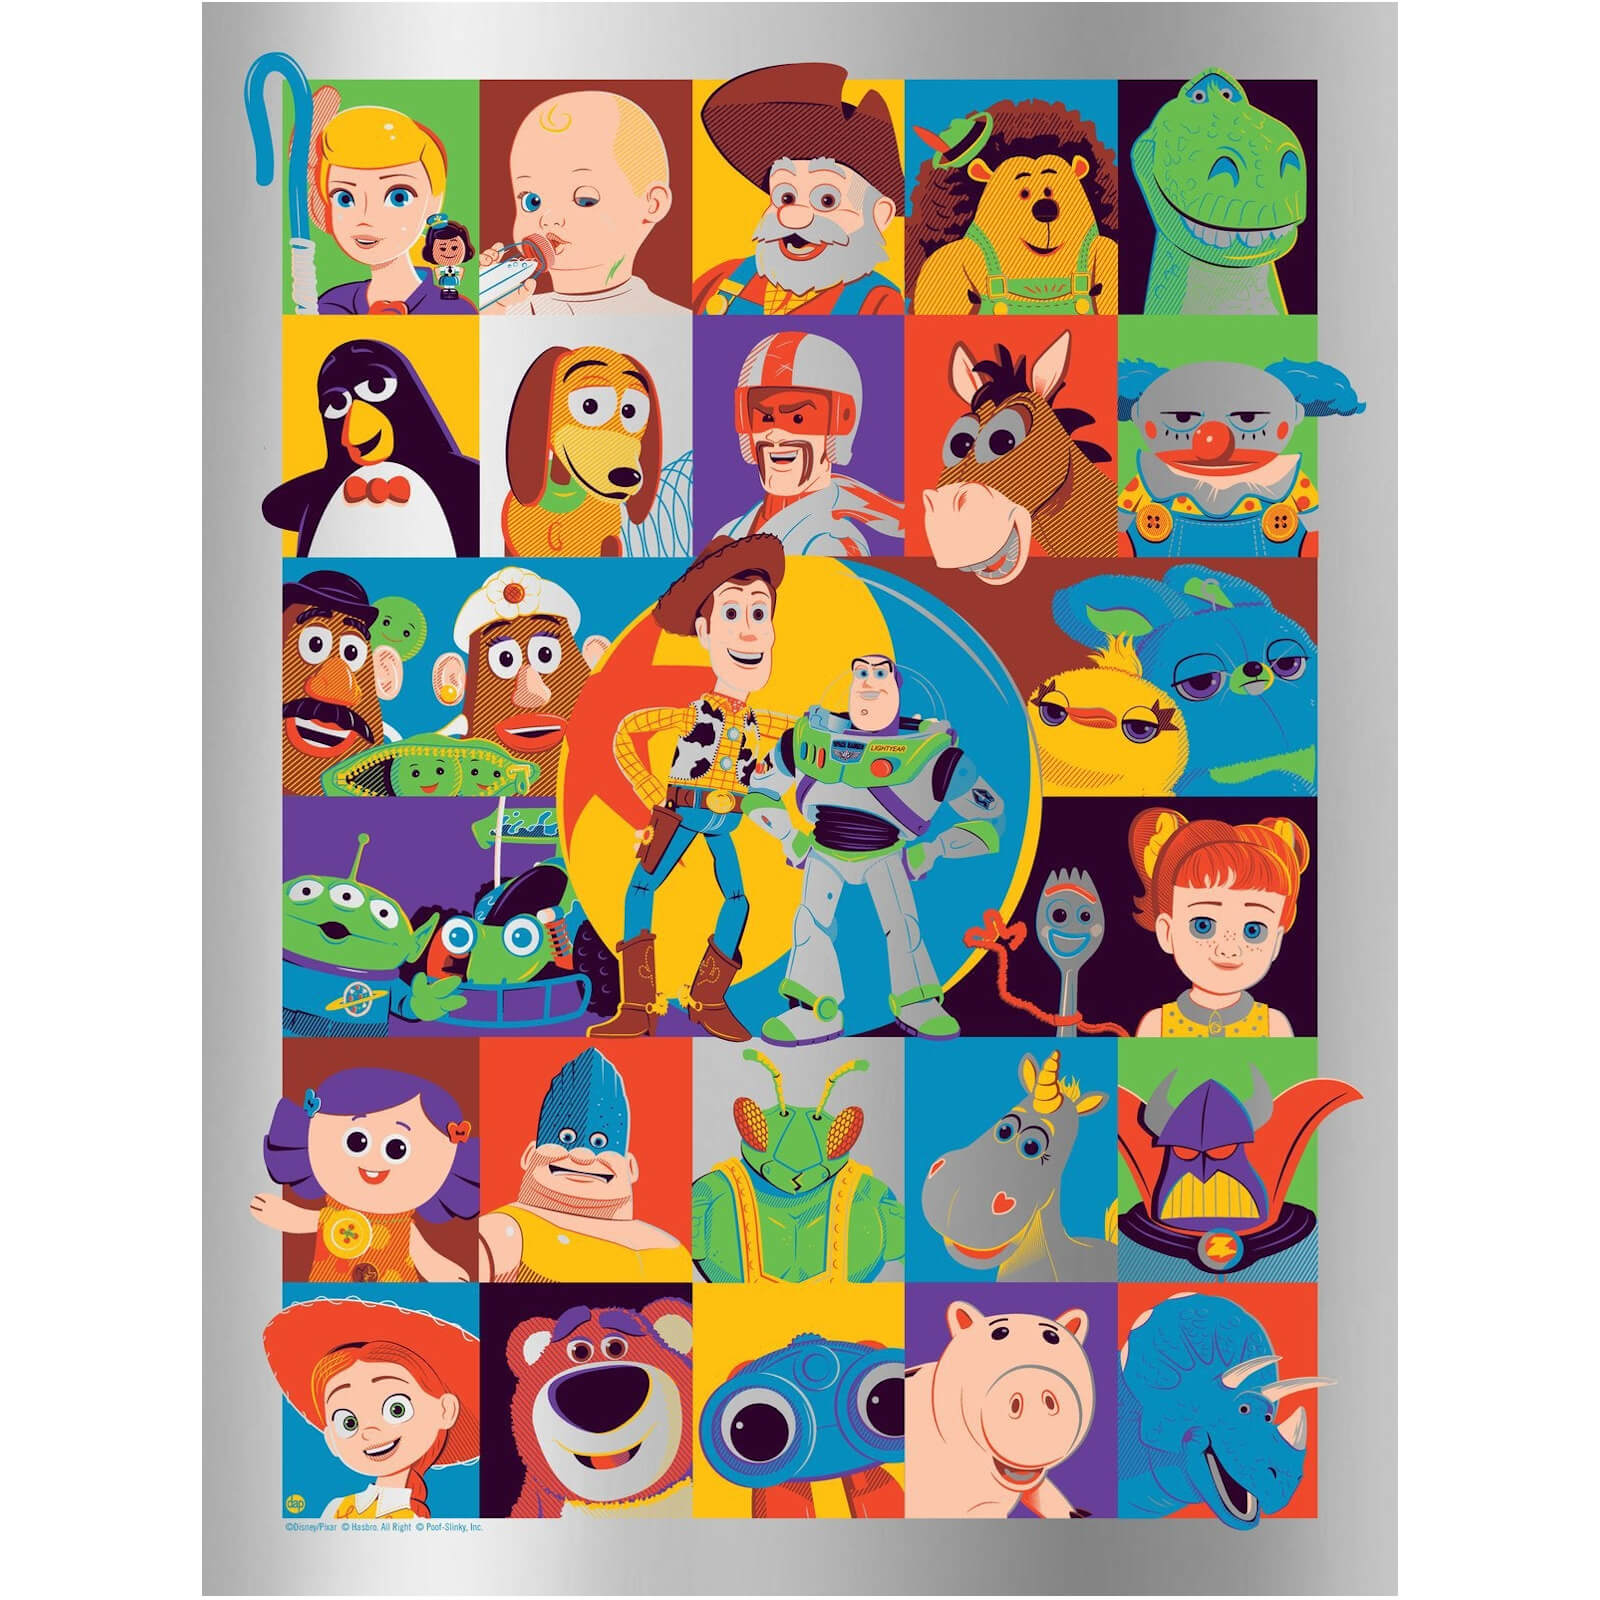 Image of Disney's Toy Story By Dave Perillo - Foil Edition